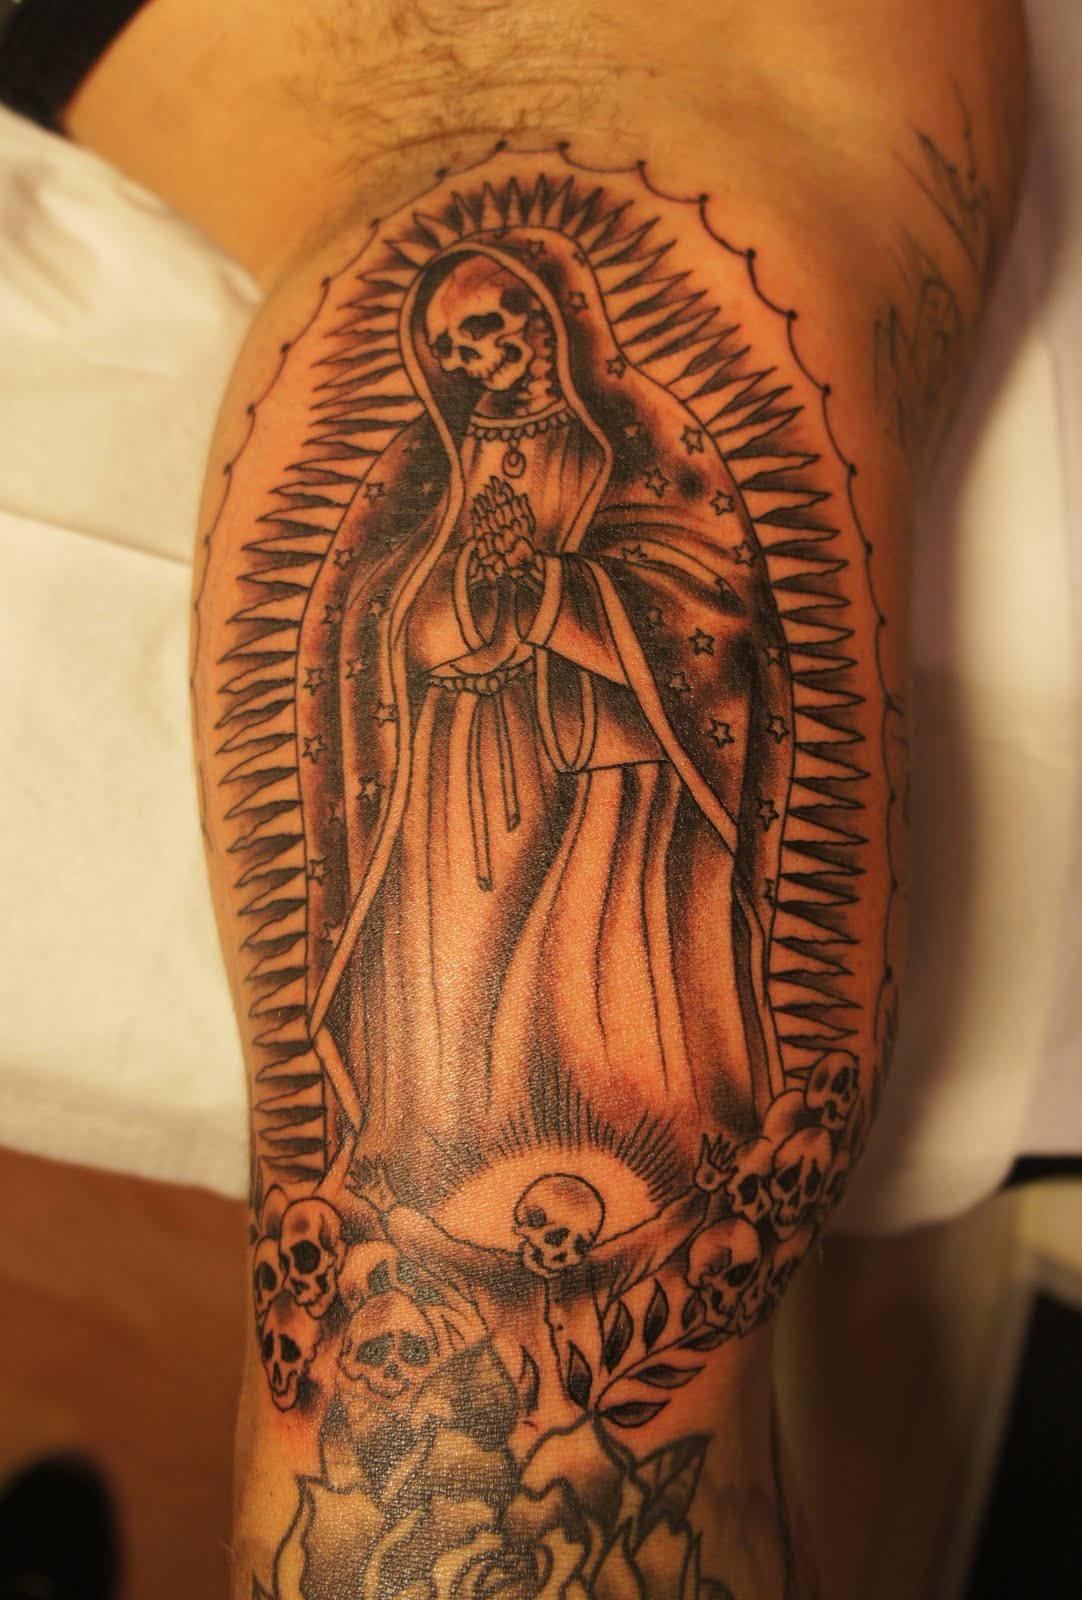 death tattoos portrayals of the santa muerte tattoo designs. Black Bedroom Furniture Sets. Home Design Ideas